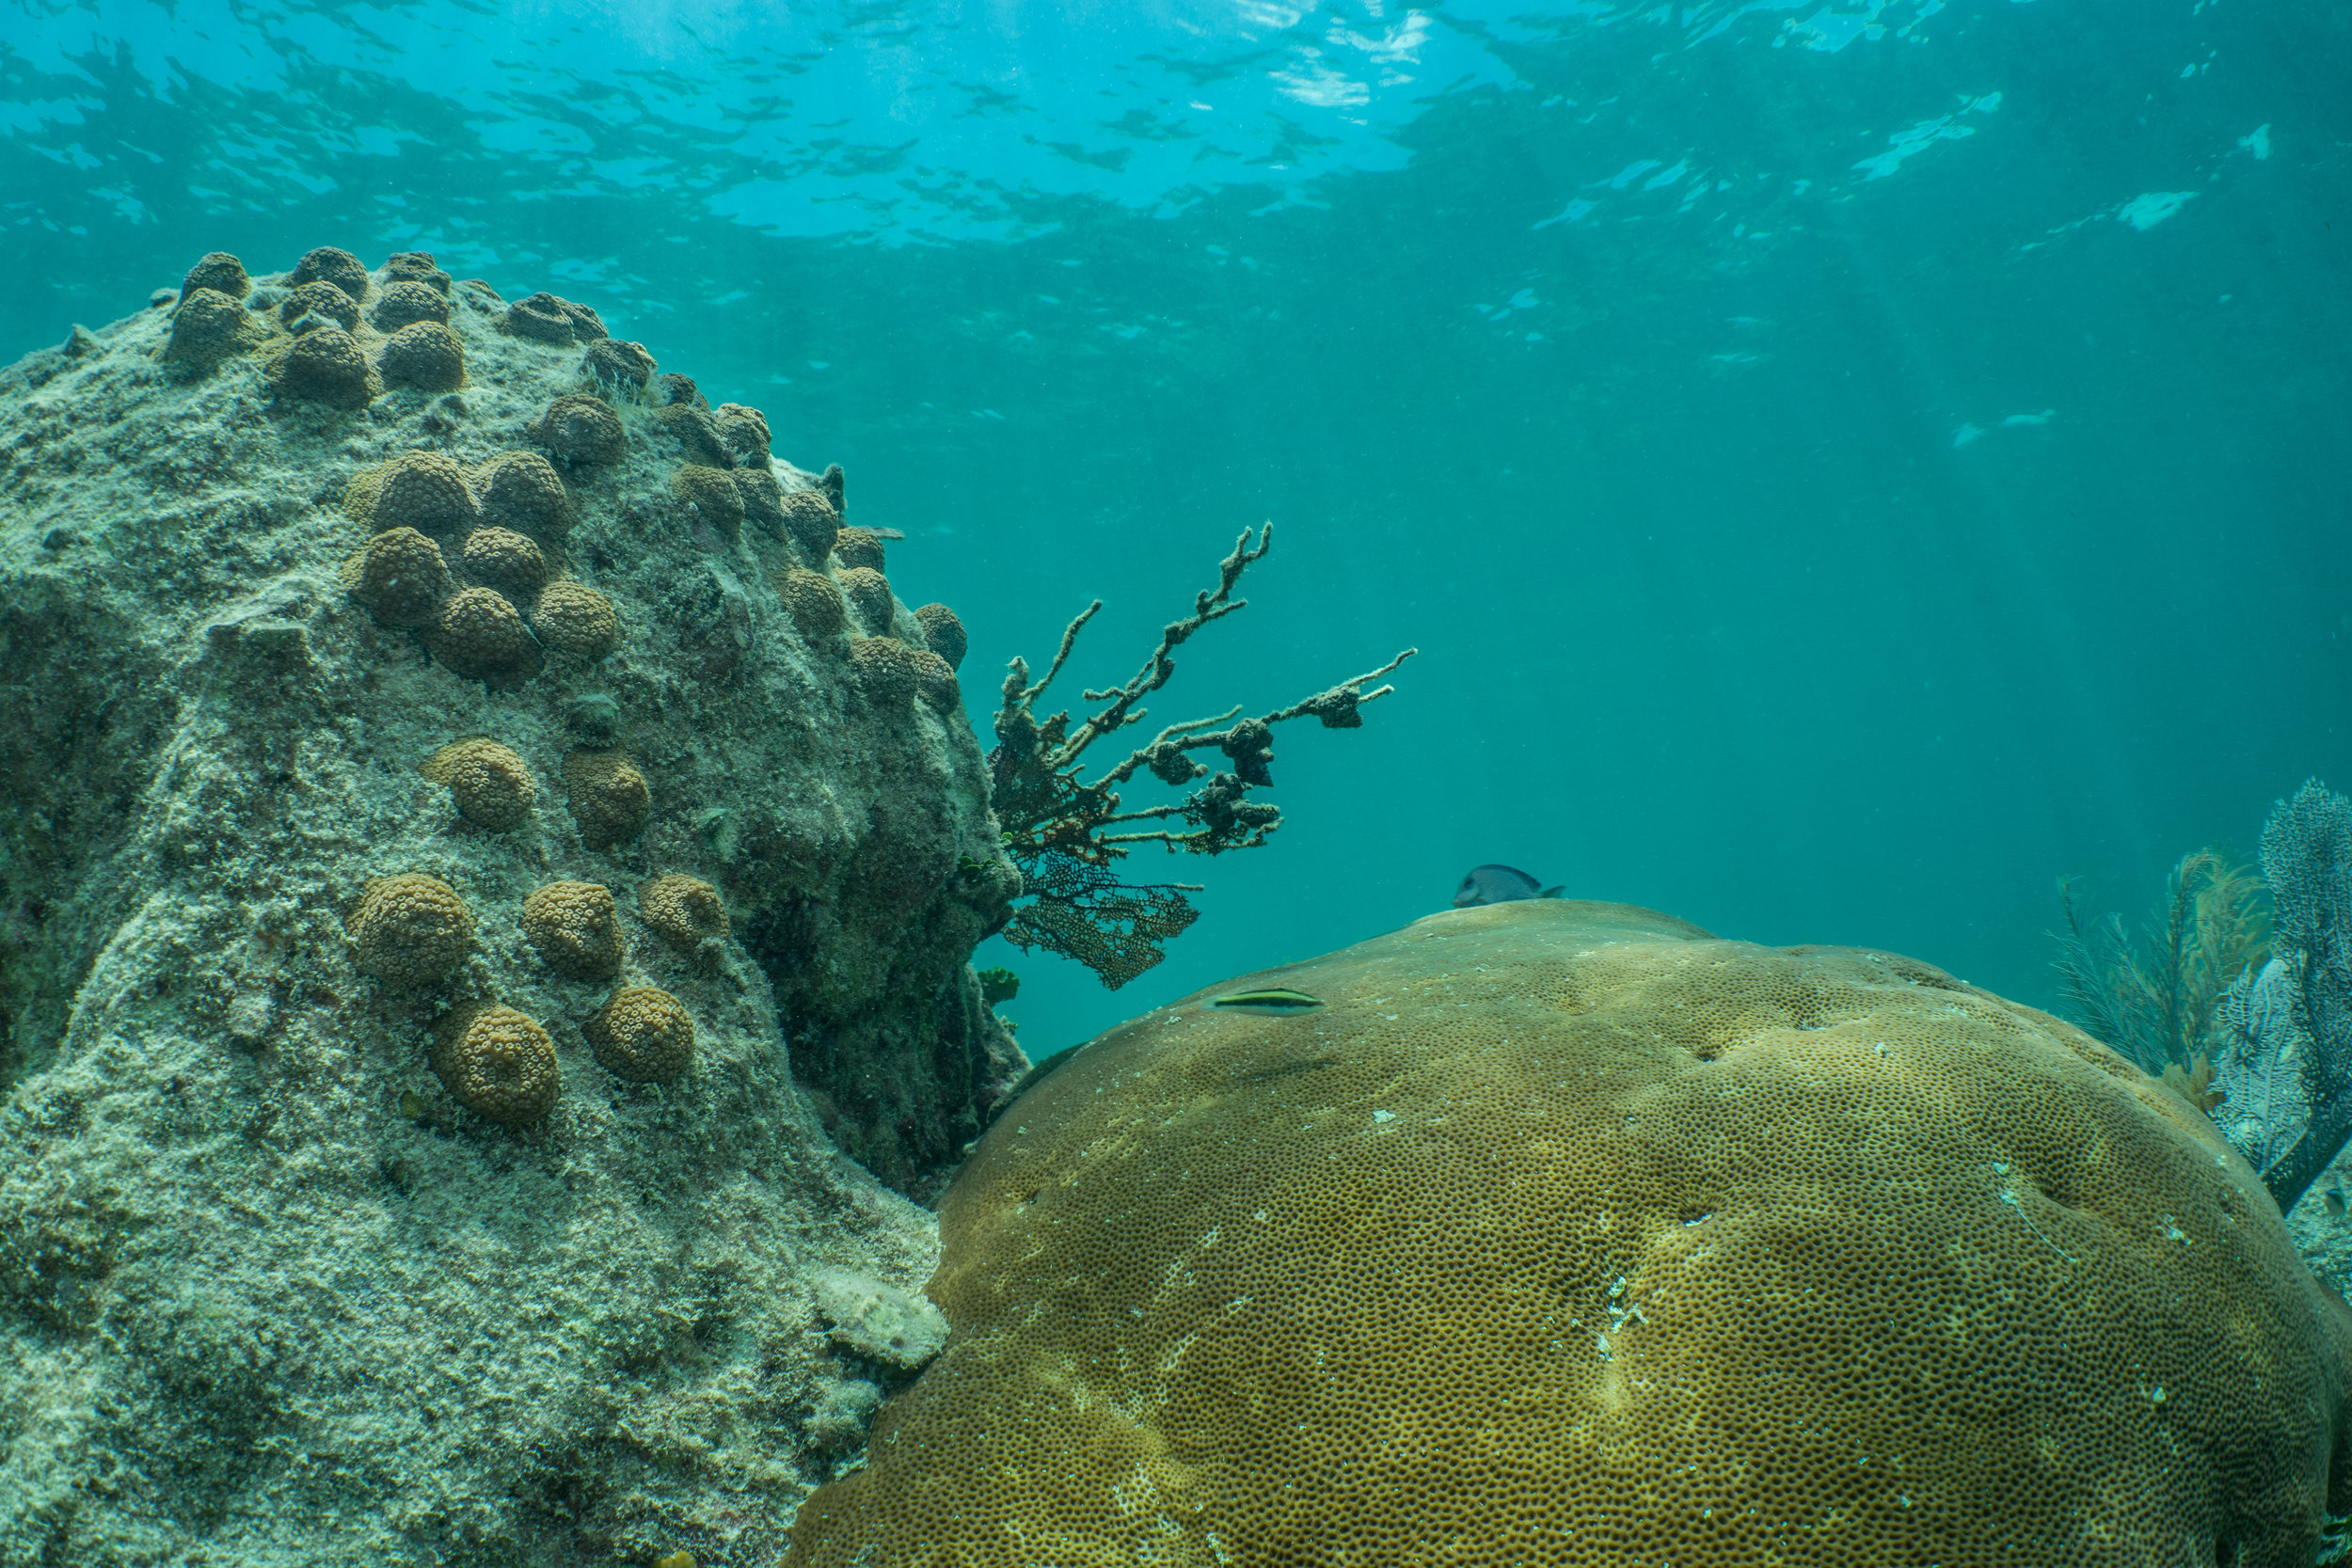 Fragments of Mountainous Star Coral adjacent to a large colony of Massive Starlet Coral.